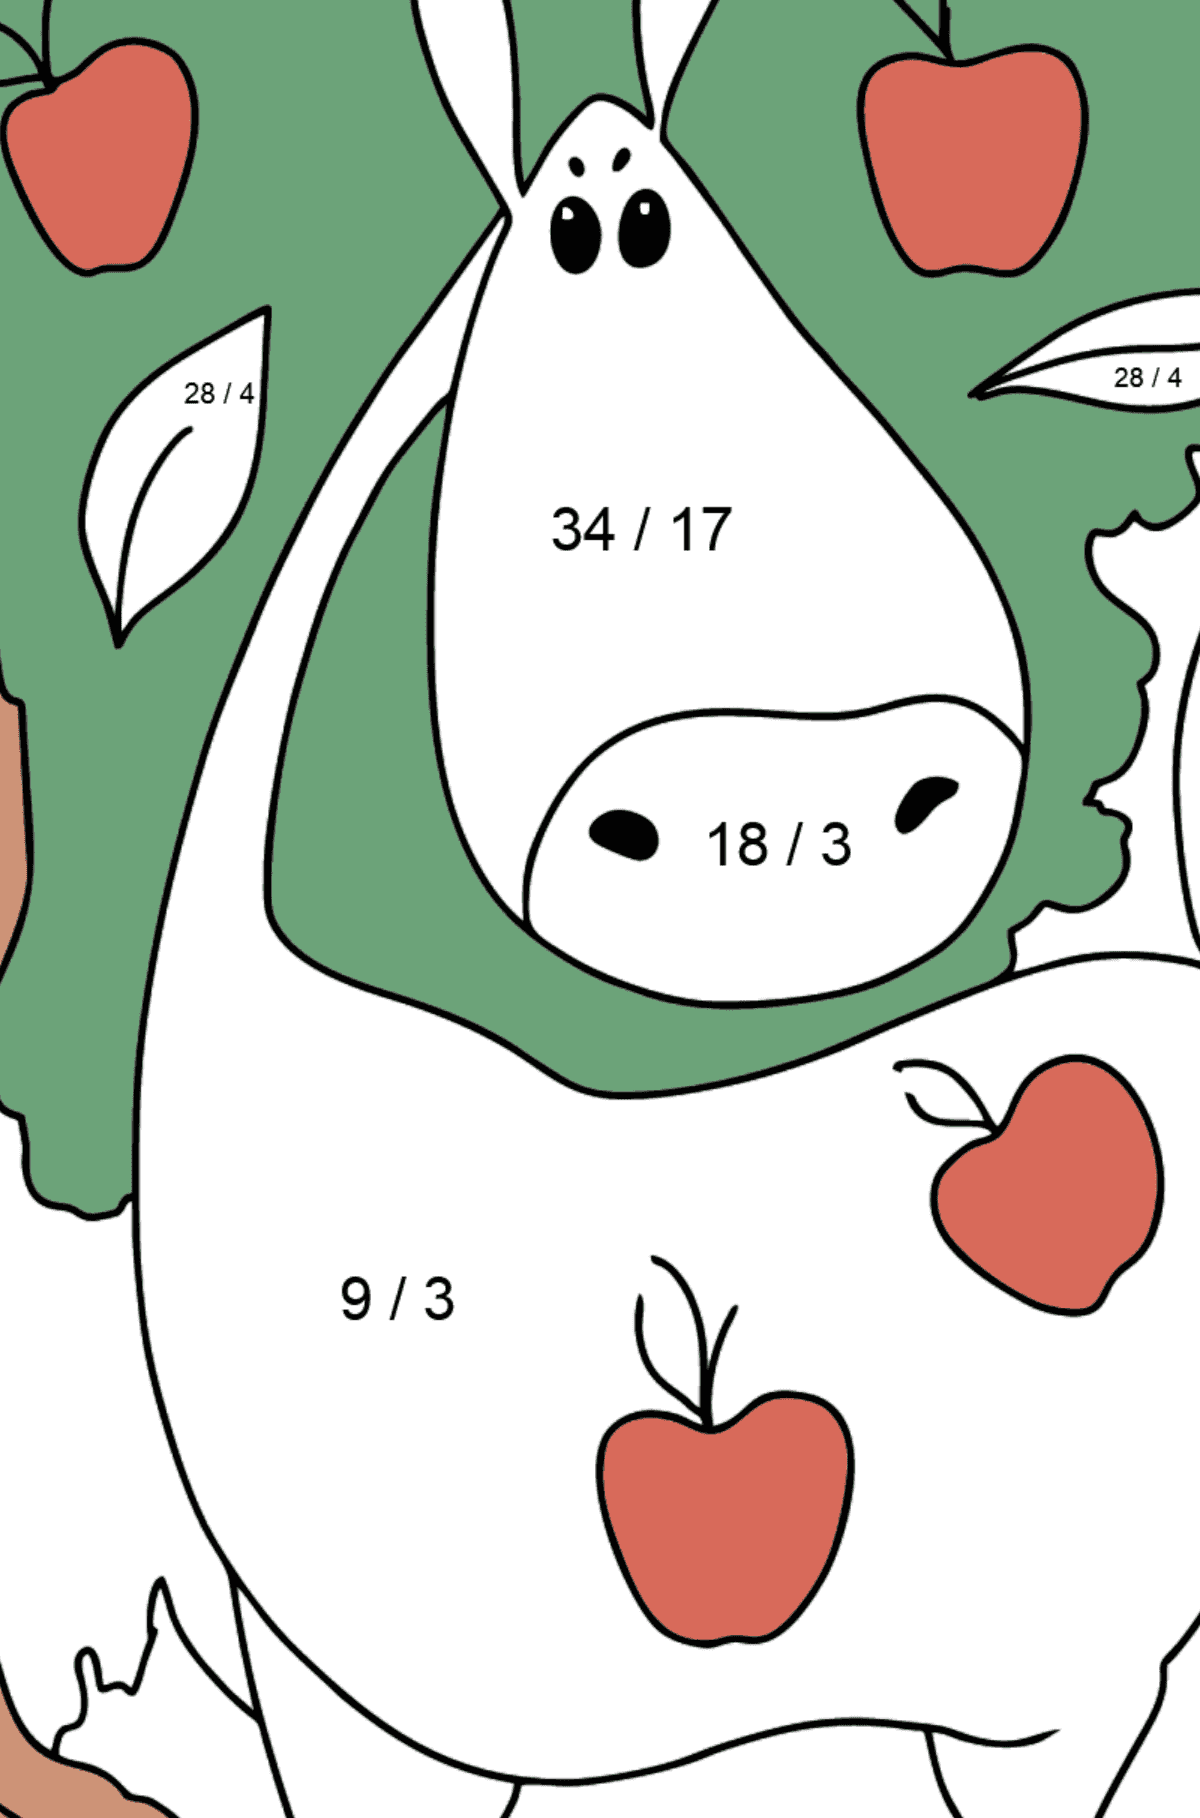 Coloring page a Horse with apples - Math Coloring - Division for Kids